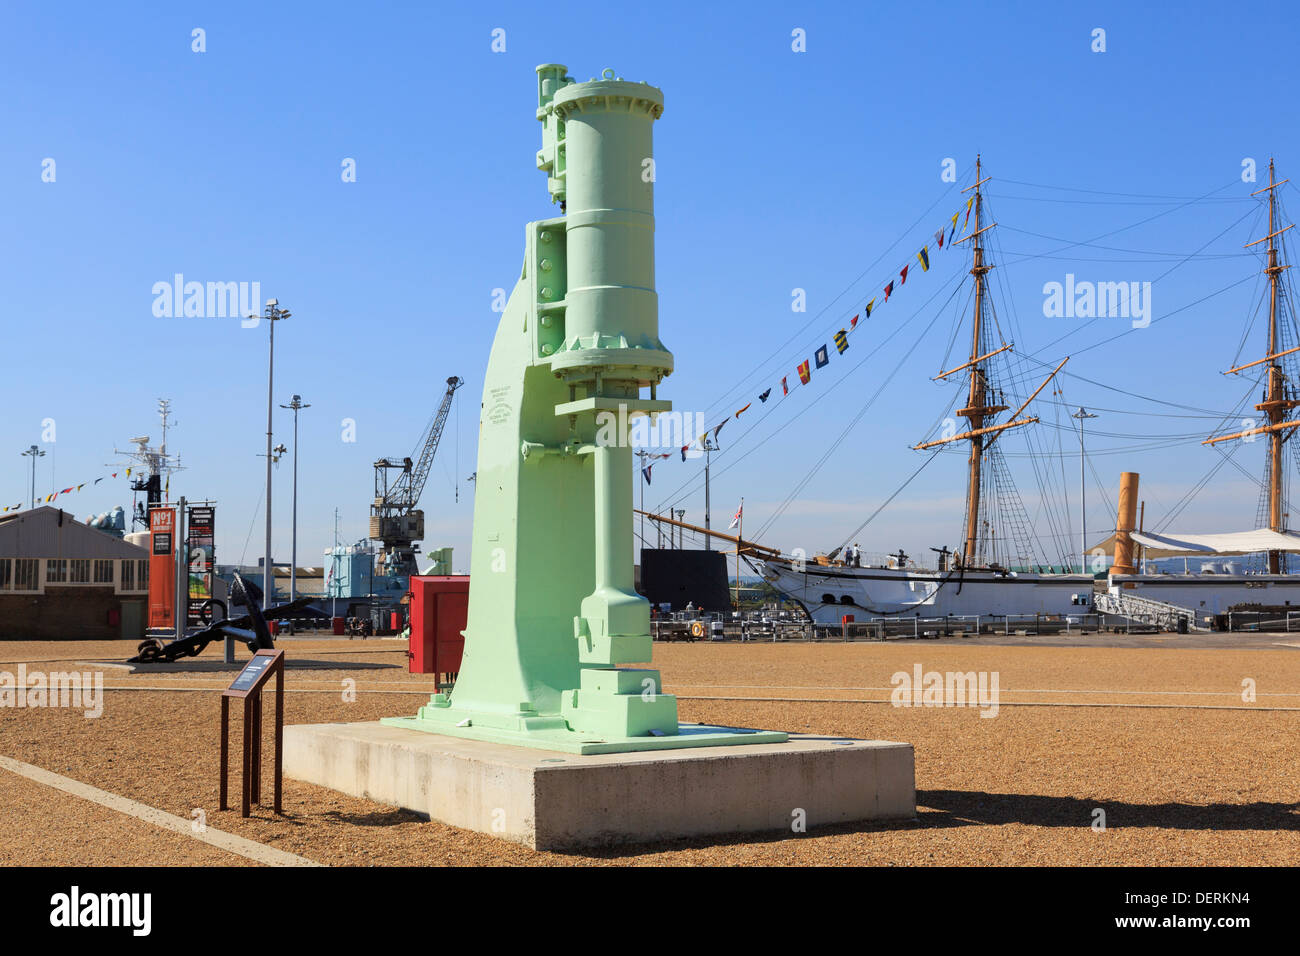 Old 30 cwt Cochrane Steam Hammer on display in the Historic Dockyard at Chatham, Kent, England, UK, Britain - Stock Image